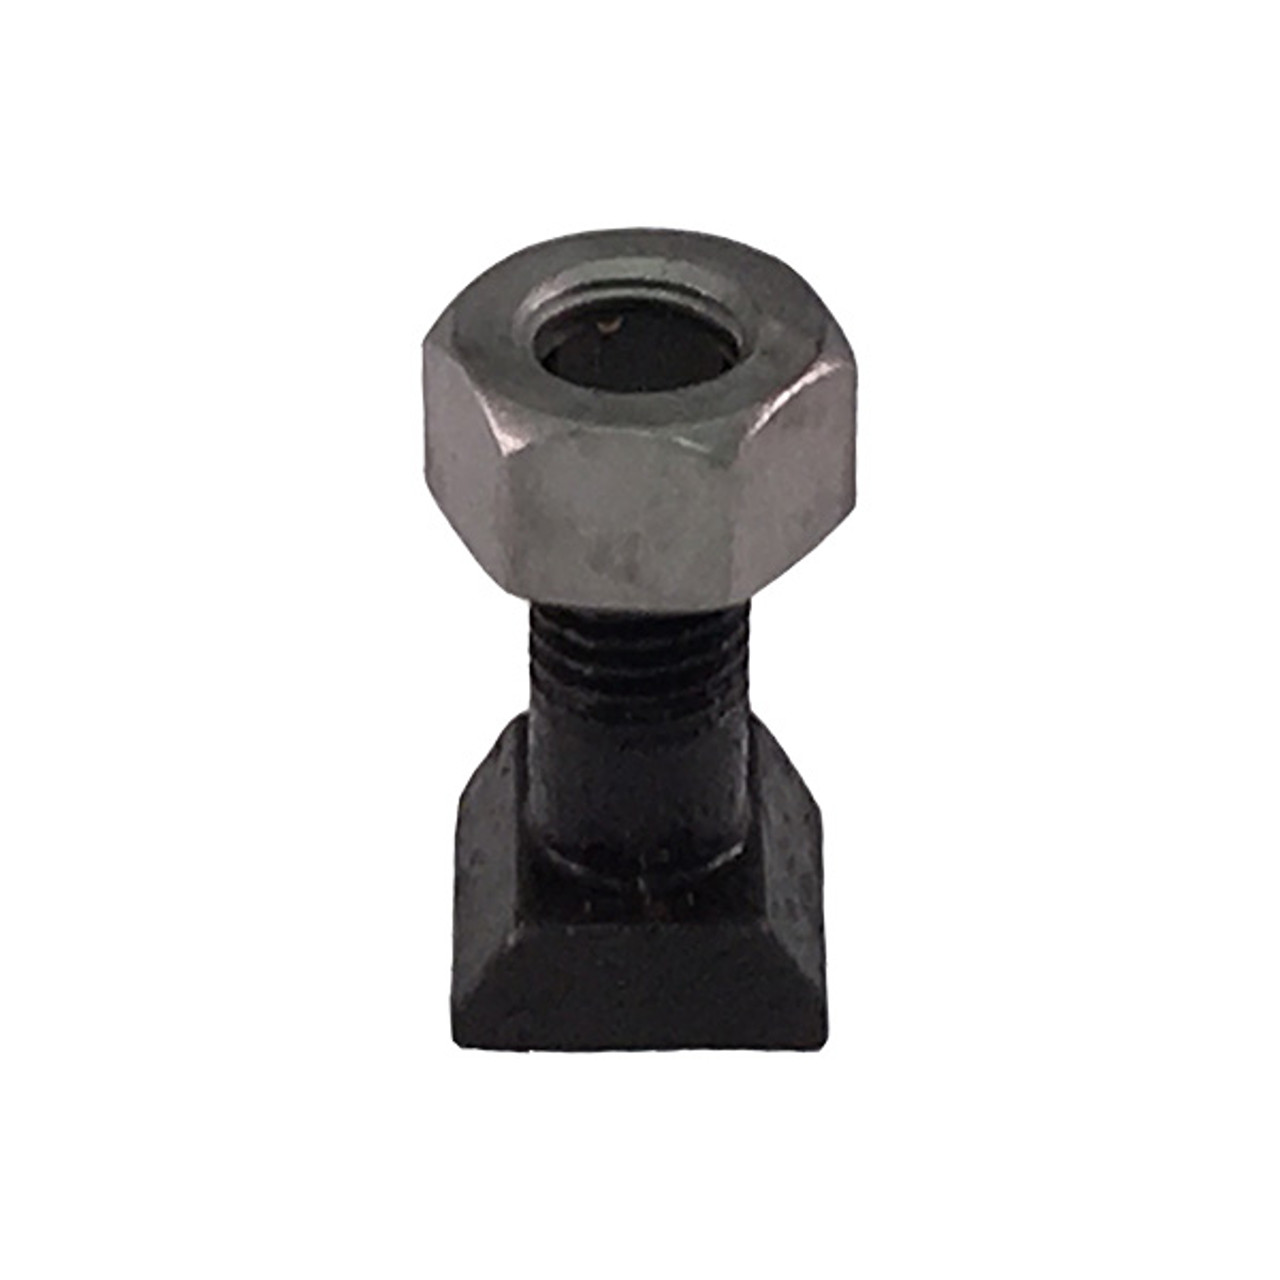 Dovetail Screw   .62-11 x 2.50 (56576)